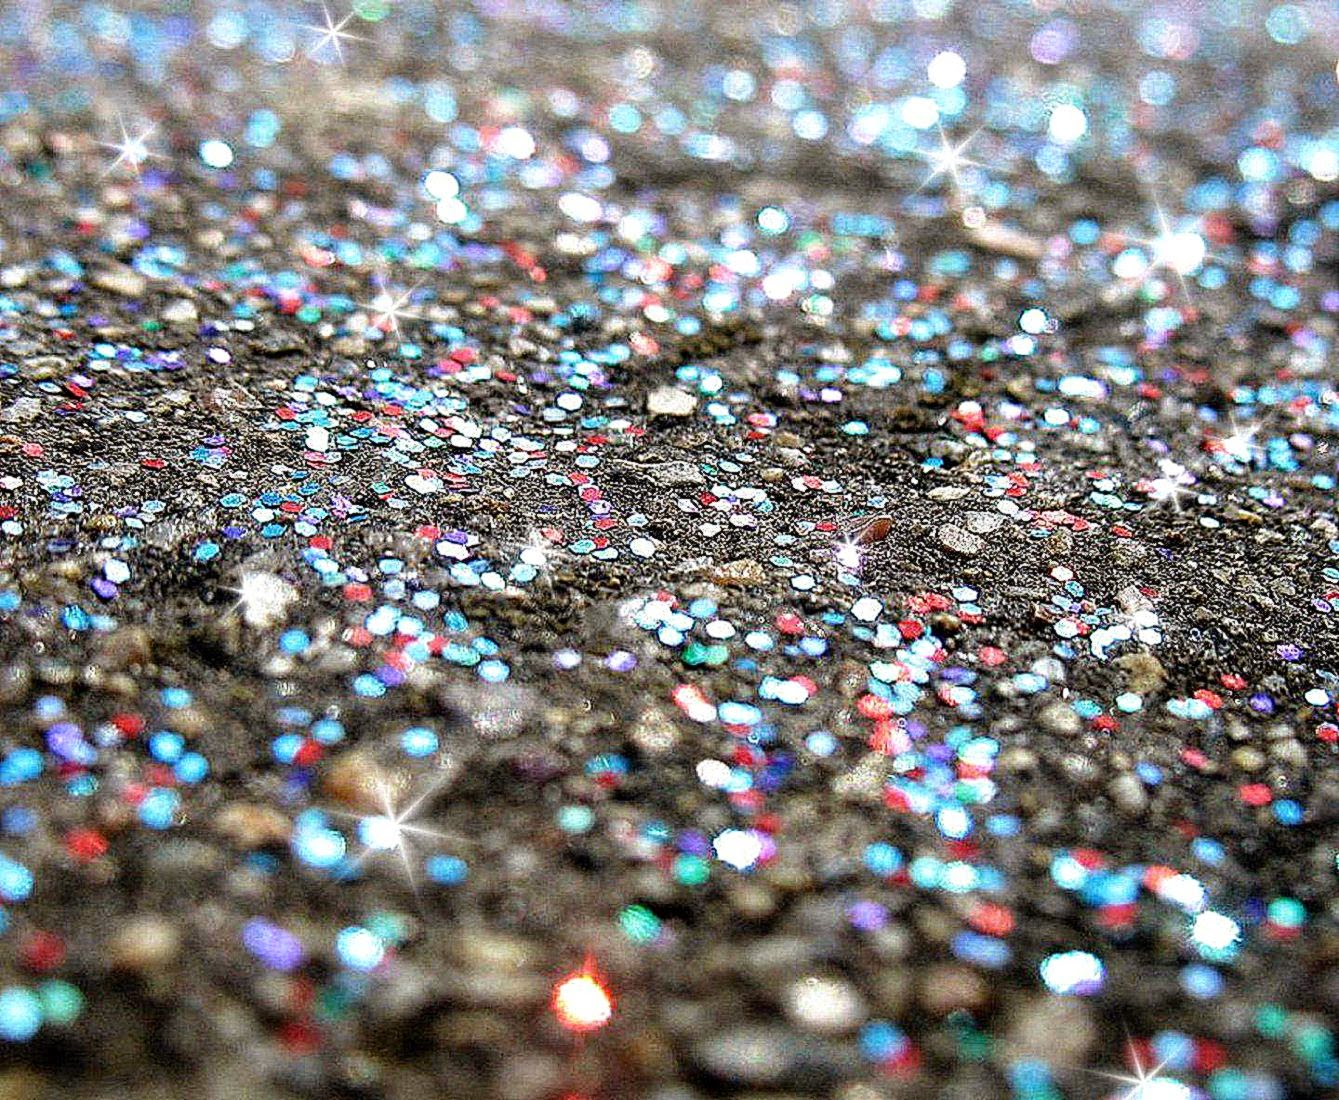 Silver glitter   149664   High Quality and Resolution